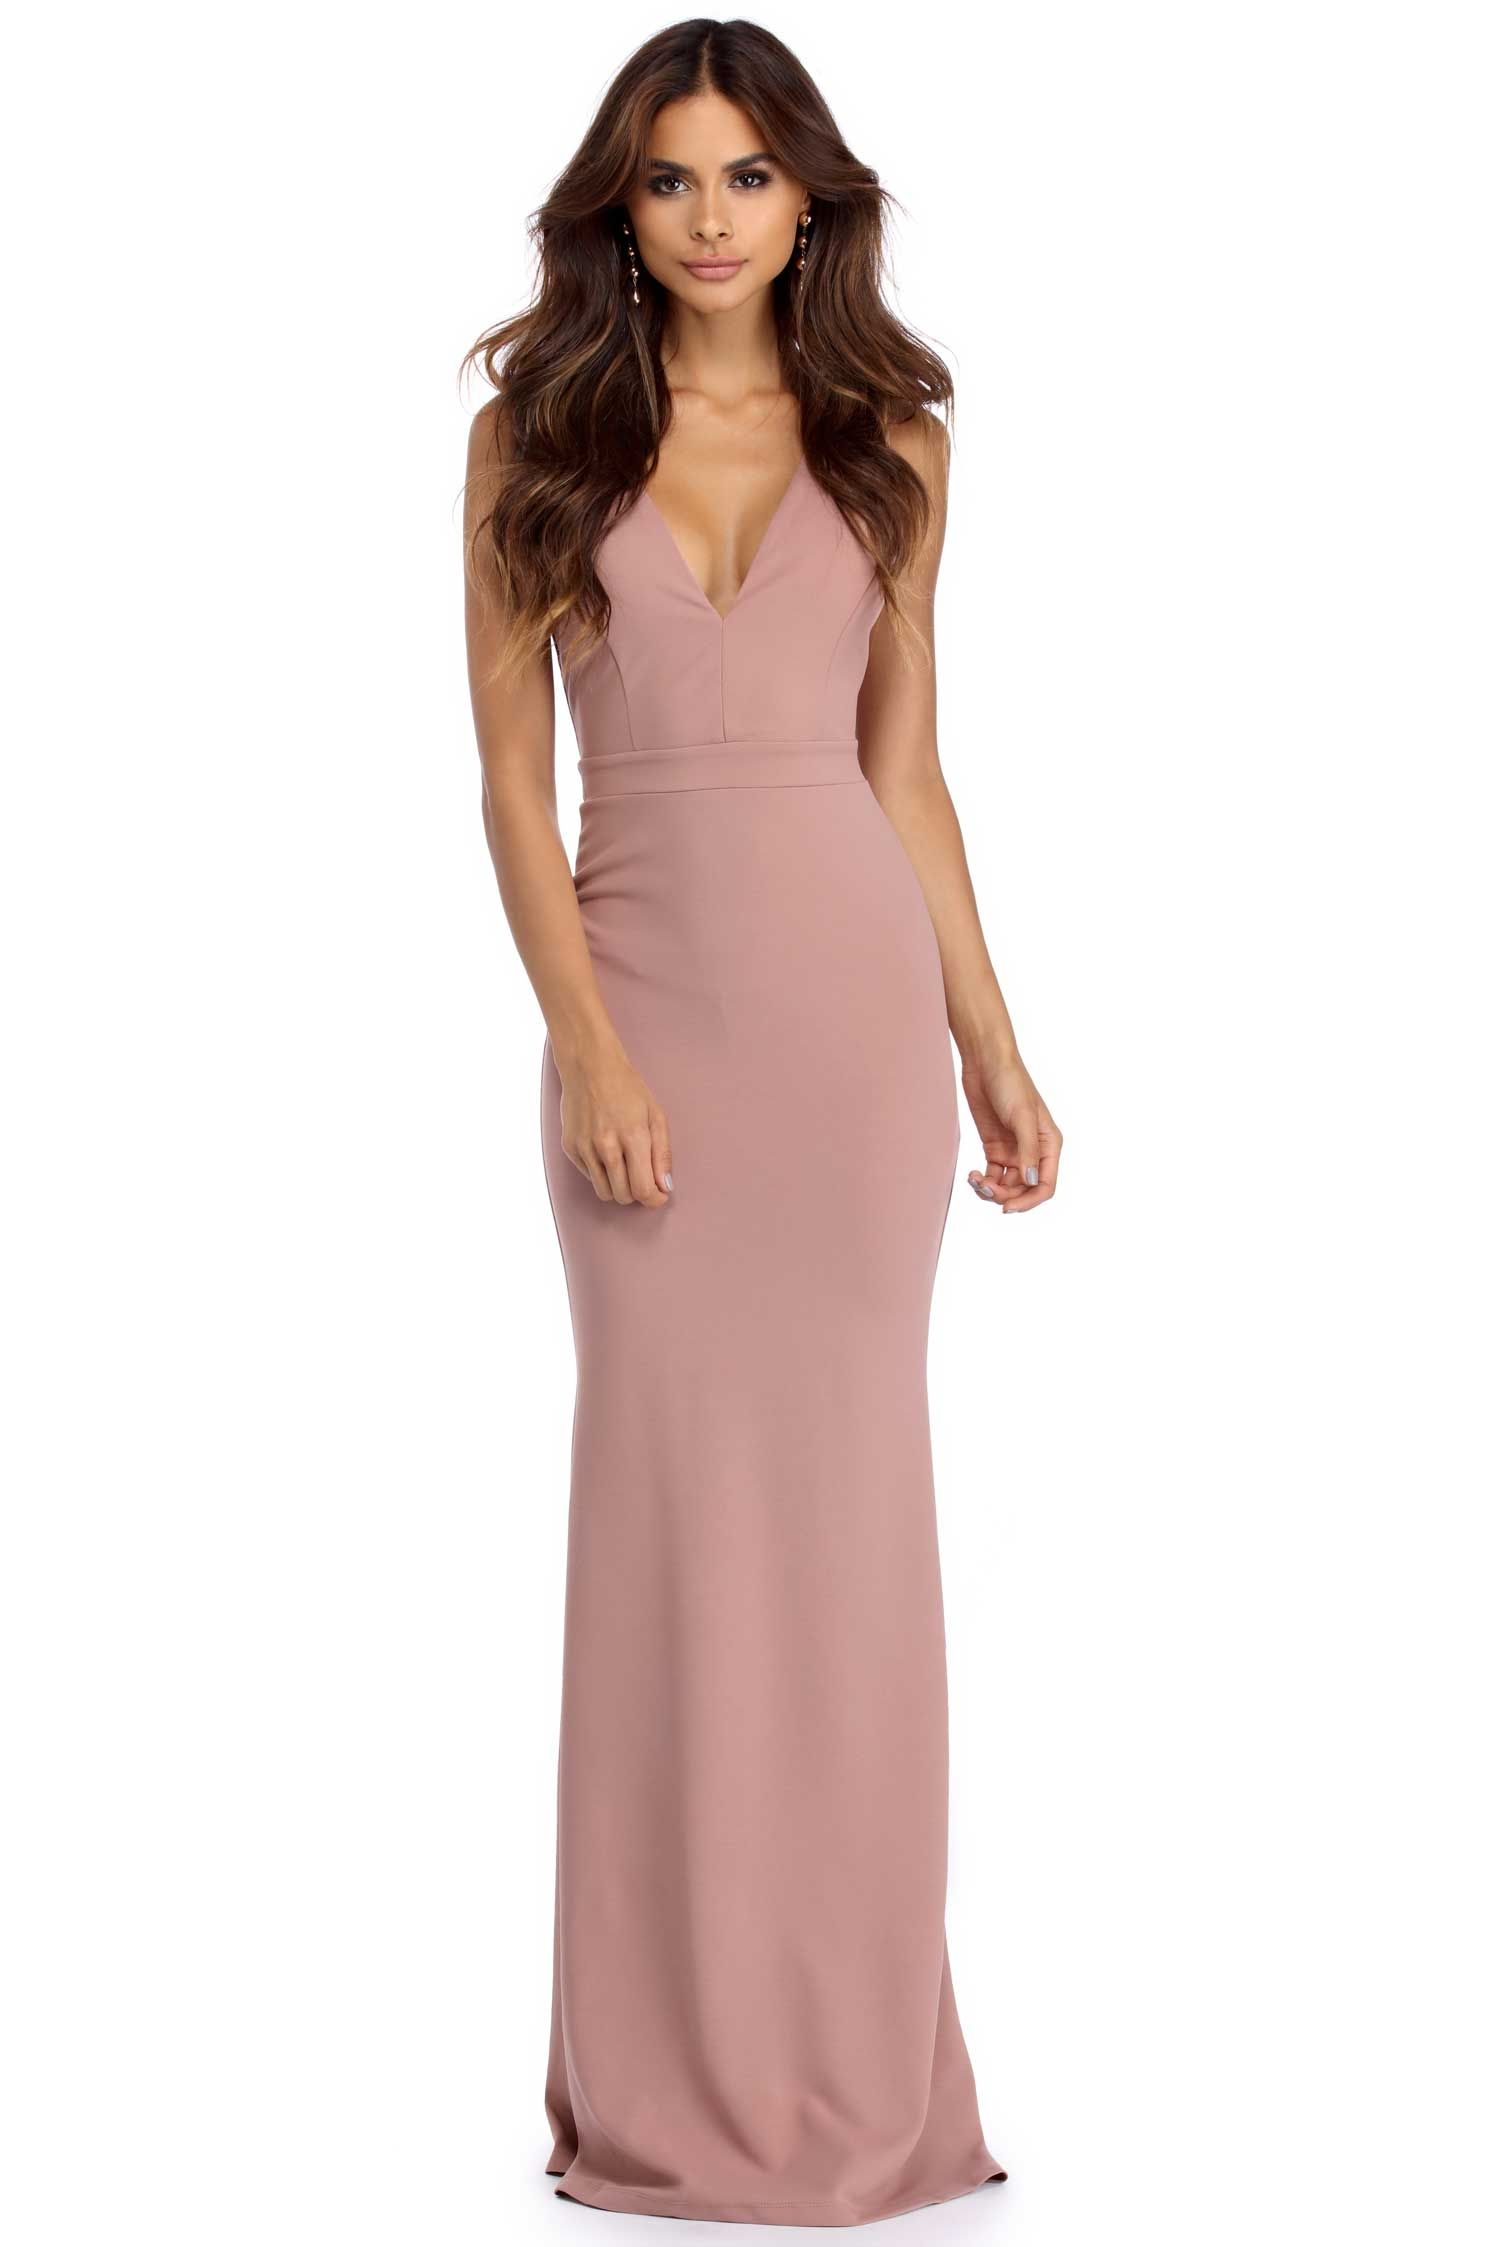 612405cf4f Miriam Lady In Mauve Dress